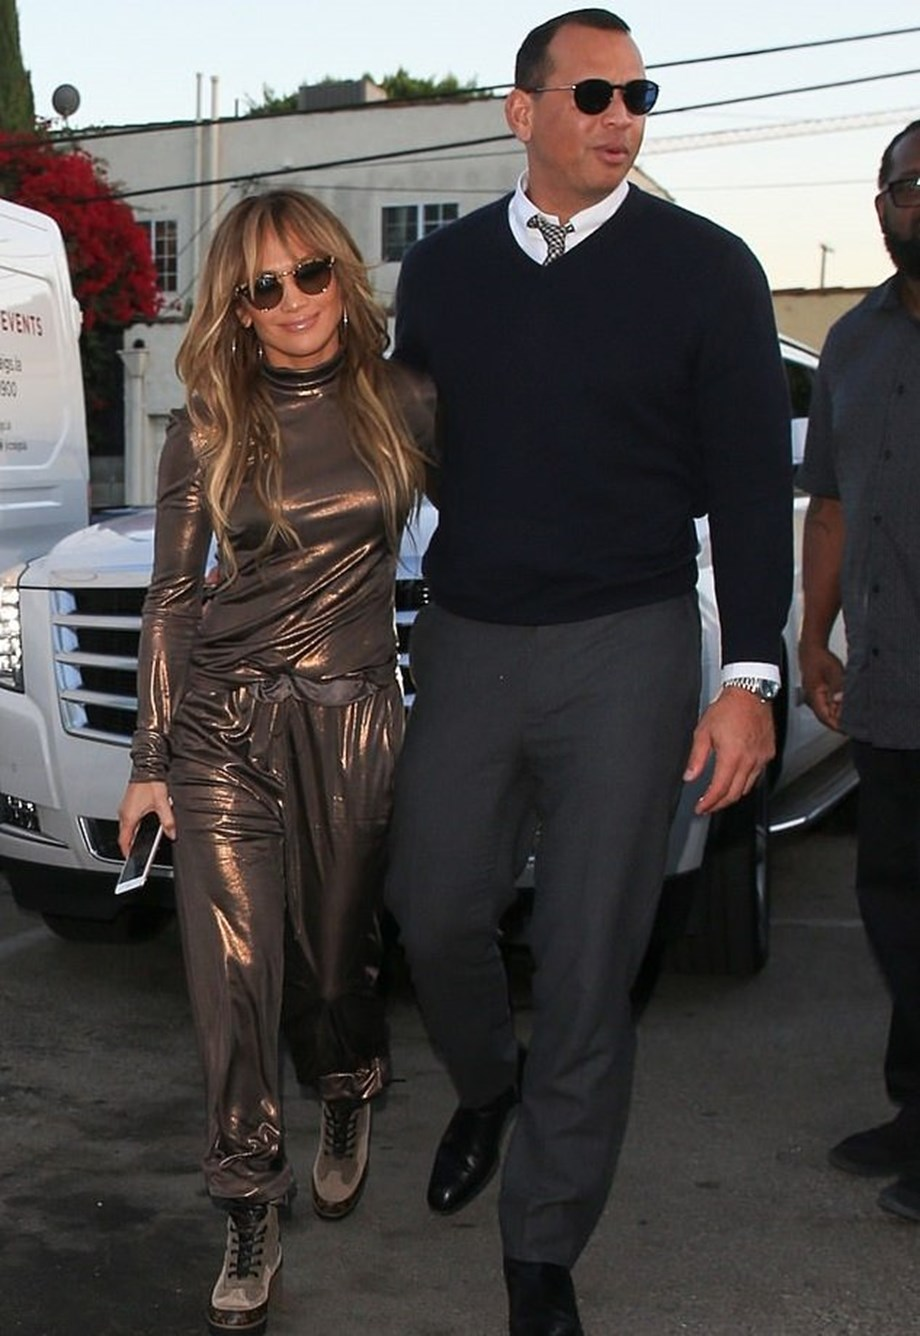 Jennifer Lopez's boyfriend once asked her for autograph